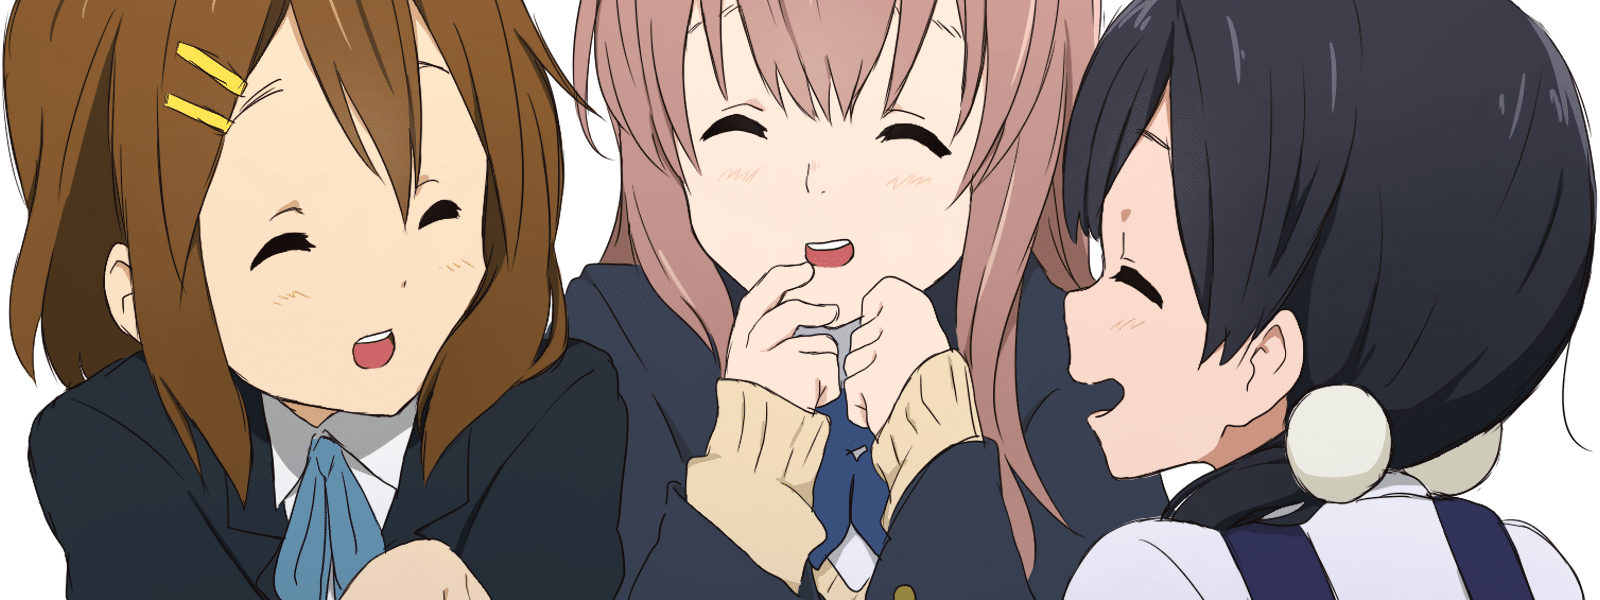 K-on x Koe no katachi